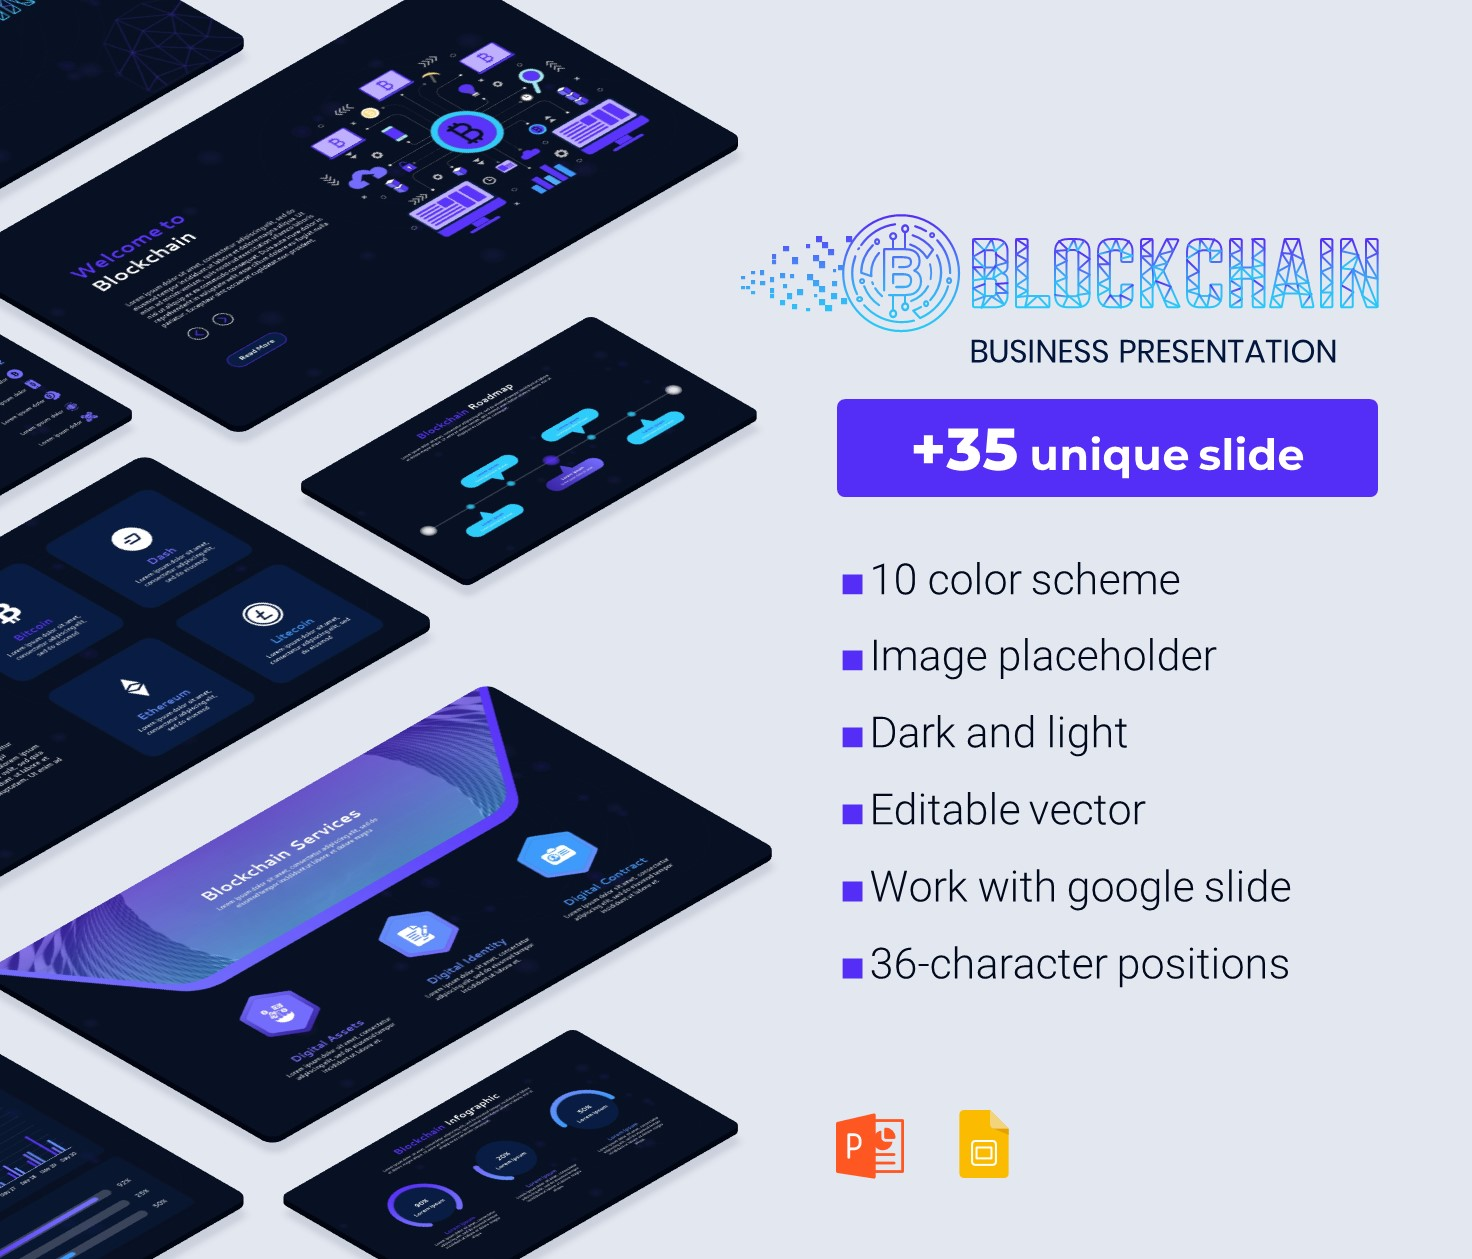 Block-chain PowerPoint business presentation Template